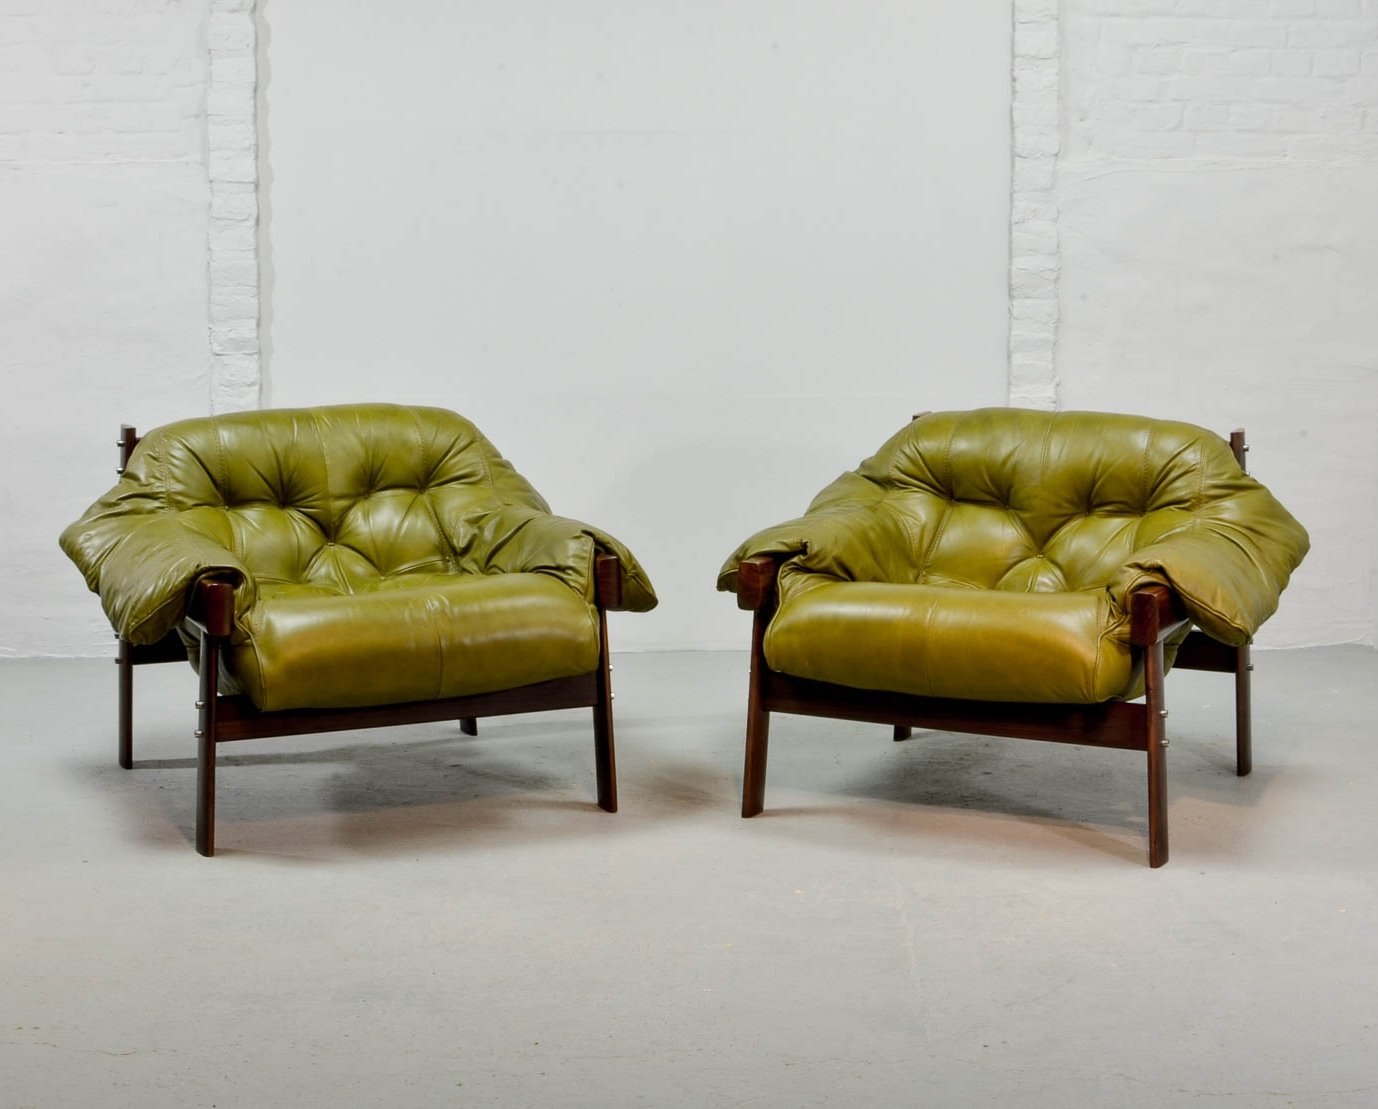 Merveilleux Beautiful Set Of Olive Green Leather Lounge Chairs U0026 Ottoman By Percival  Lafer